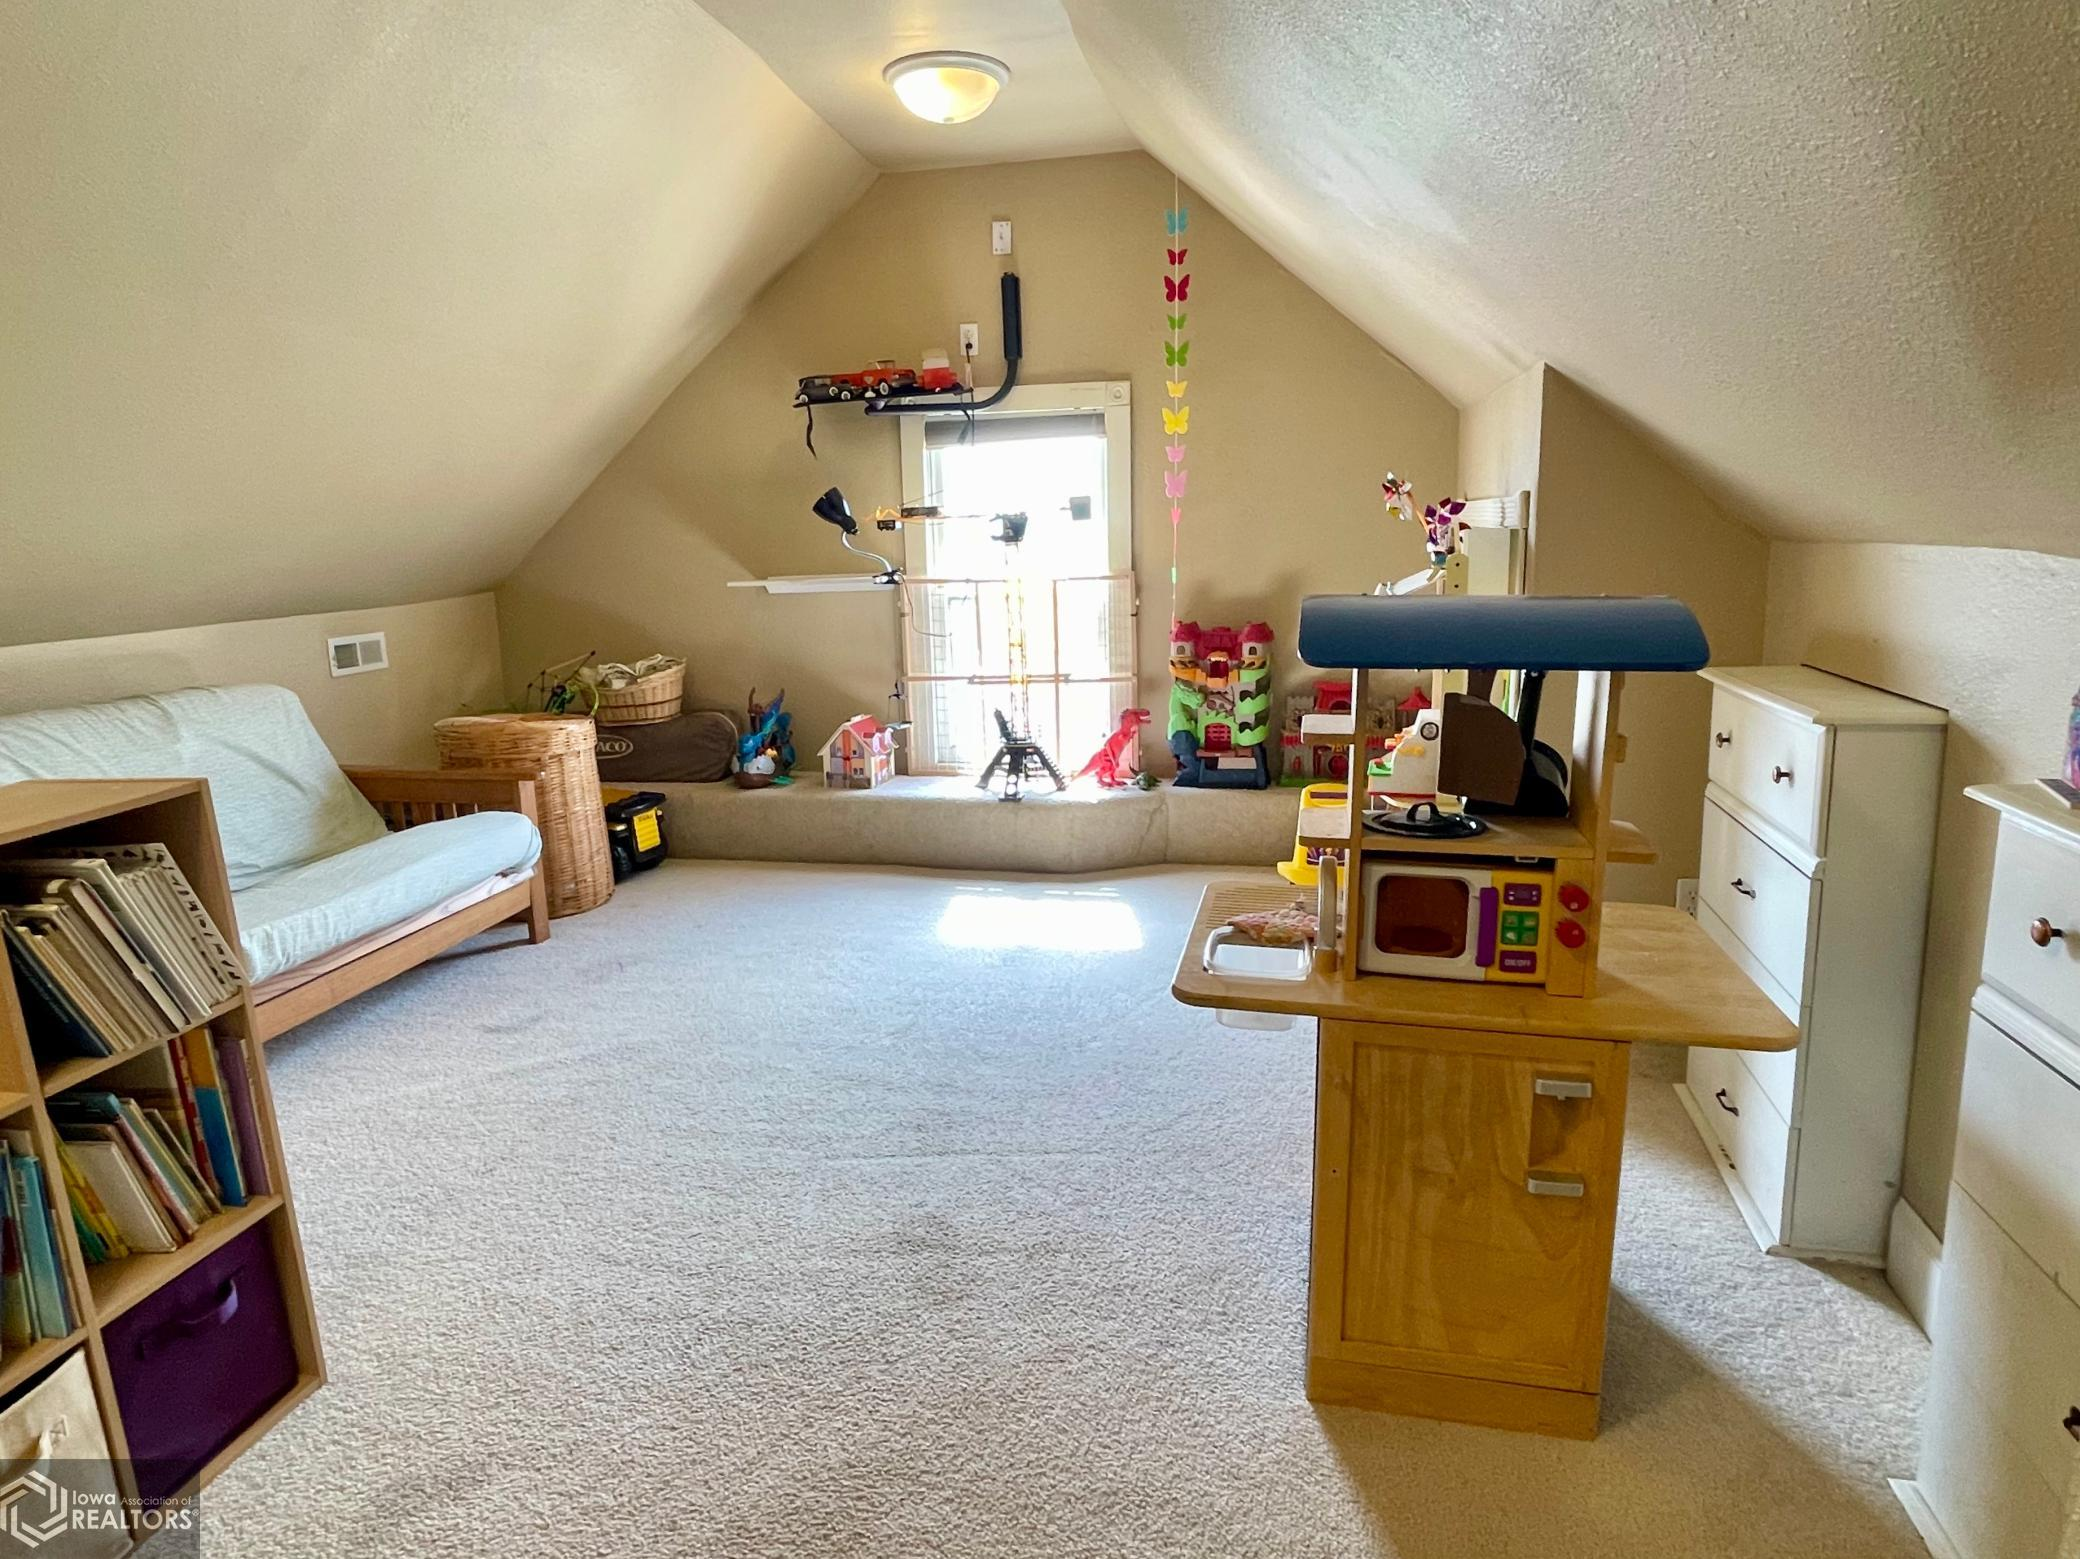 525 Broad, Grinnell, Iowa 50112-2410, 5 Bedrooms Bedrooms, ,2 BathroomsBathrooms,Single Family,For Sale,Broad,6002087